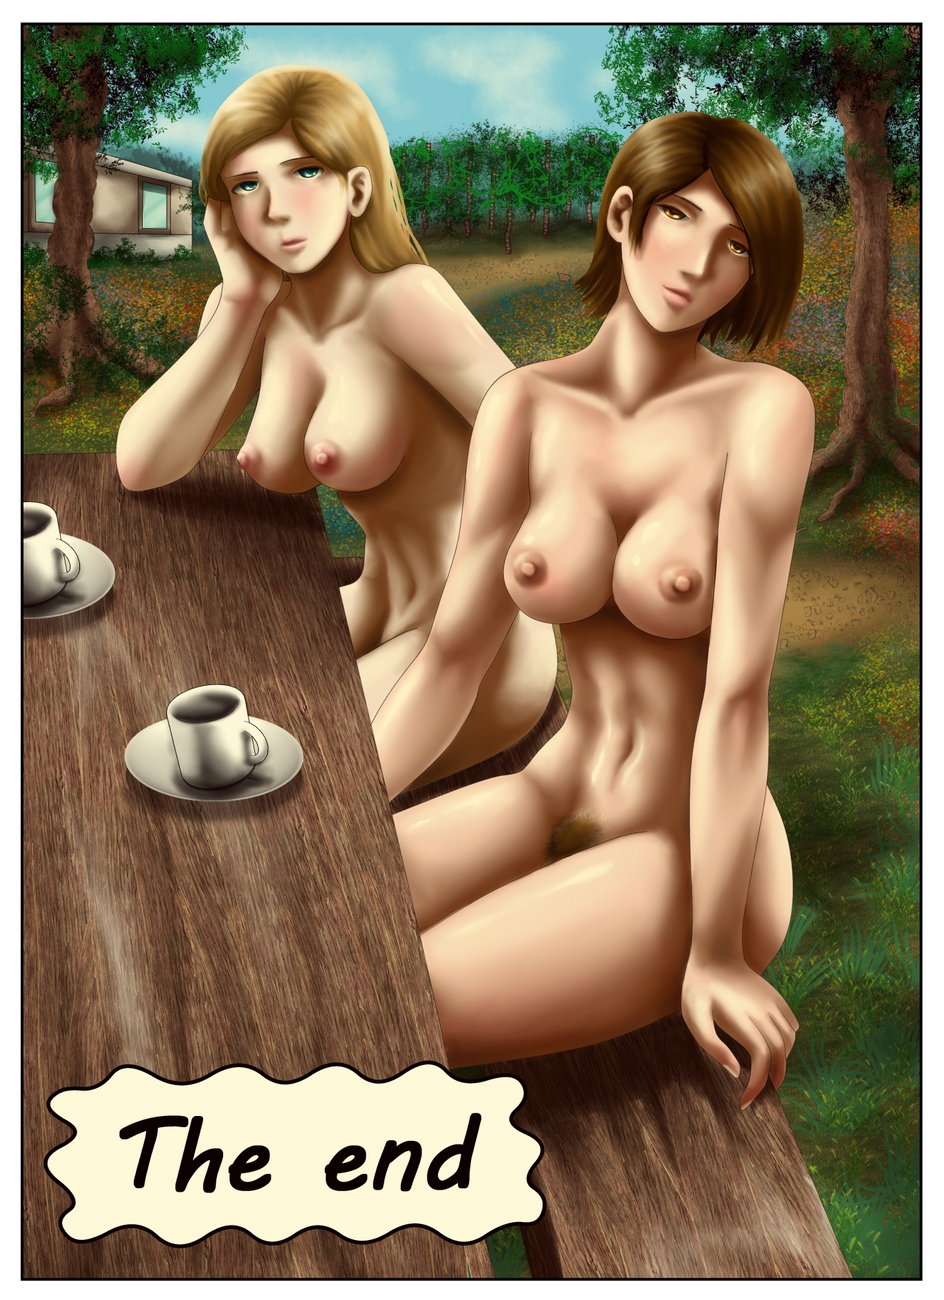 Greetings From The Summer Camp comic porn